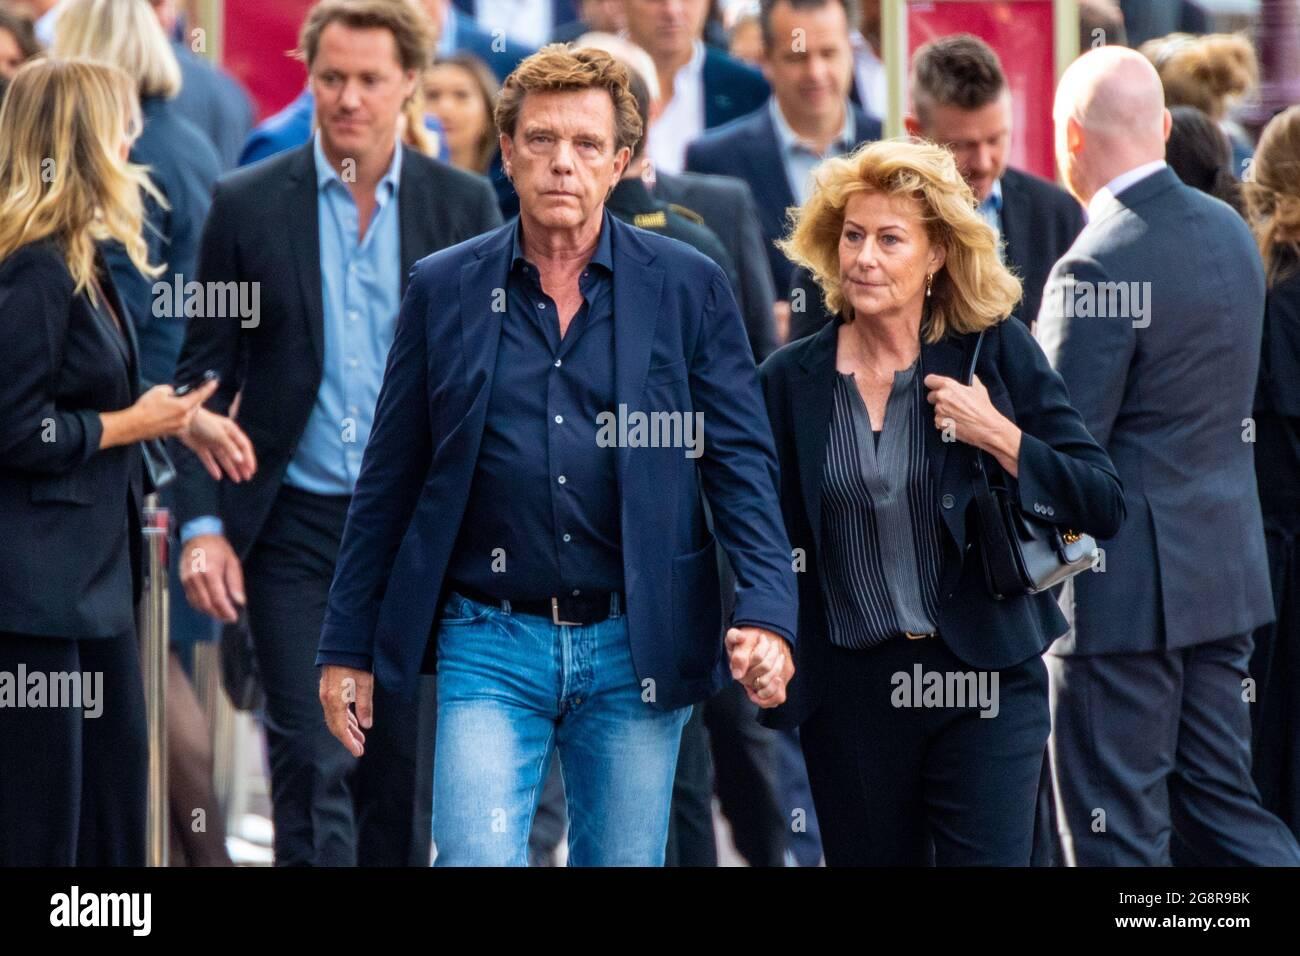 John De Mol And His Wife Els Attending The Private Farewell For Peter R De Vries A Well Known Dutch Journalist His Coffin Is Later Carried Away From The Royal Theater Carre